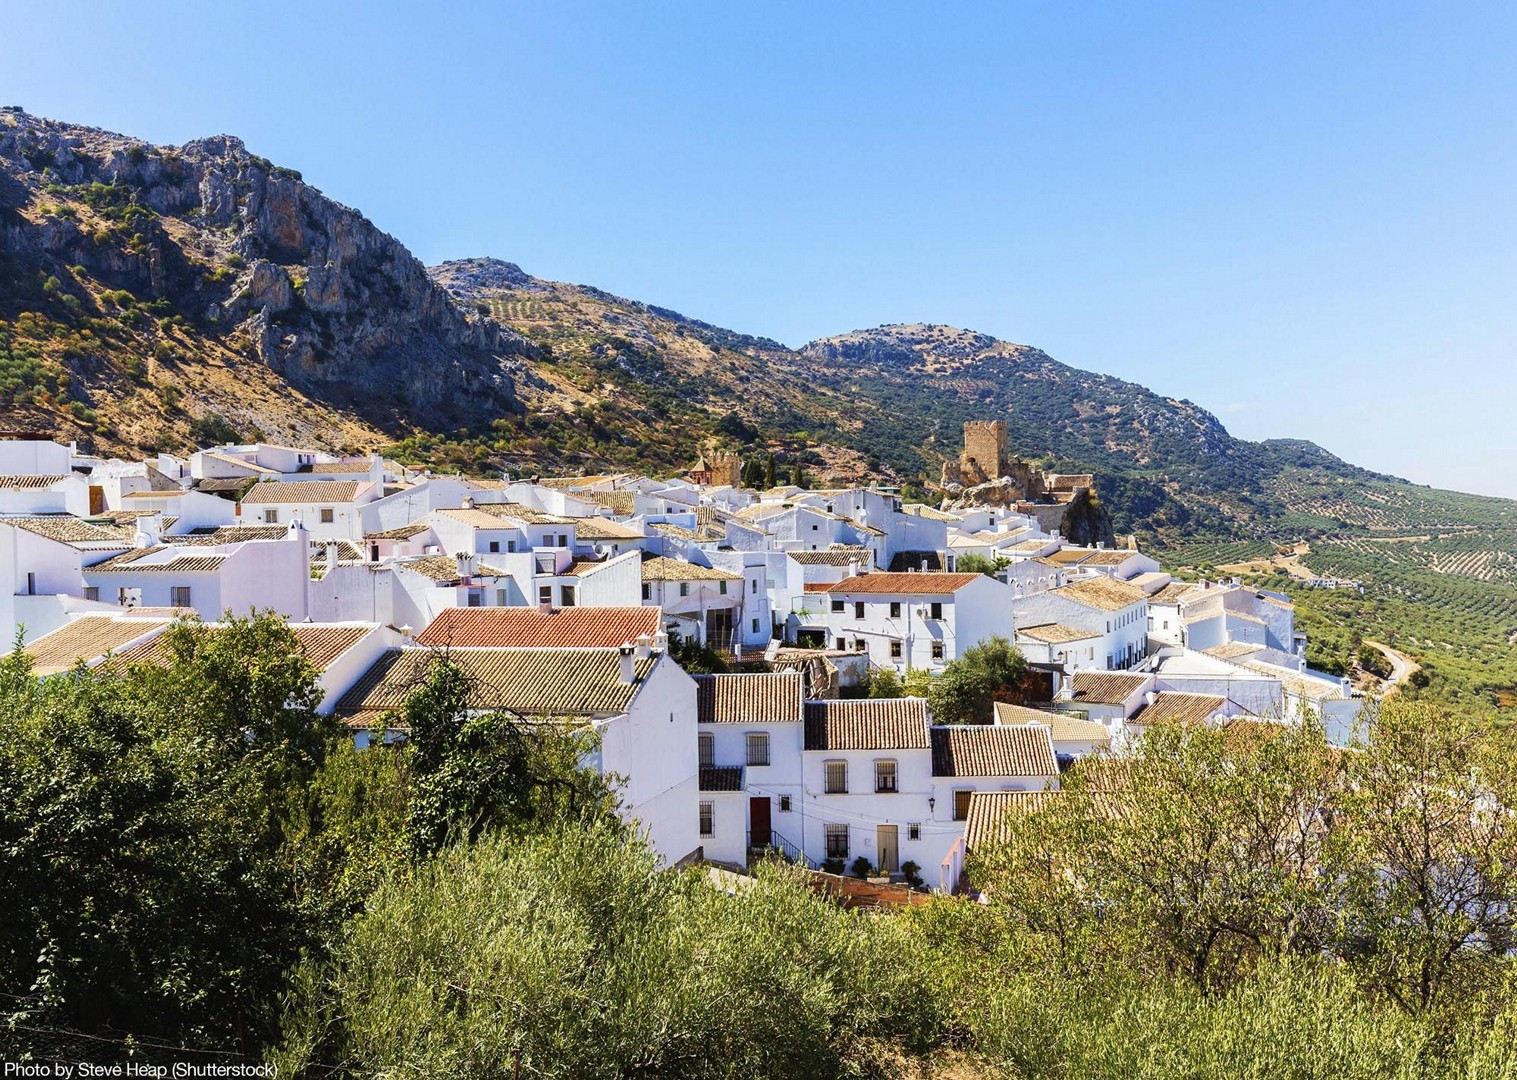 andalucia-granada-to-seville-self-guided-leisure-cycling-holiday.jpg - Southern Spain - Granada to Seville - Self-Guided Leisure Cycling Holiday - Leisure Cycling